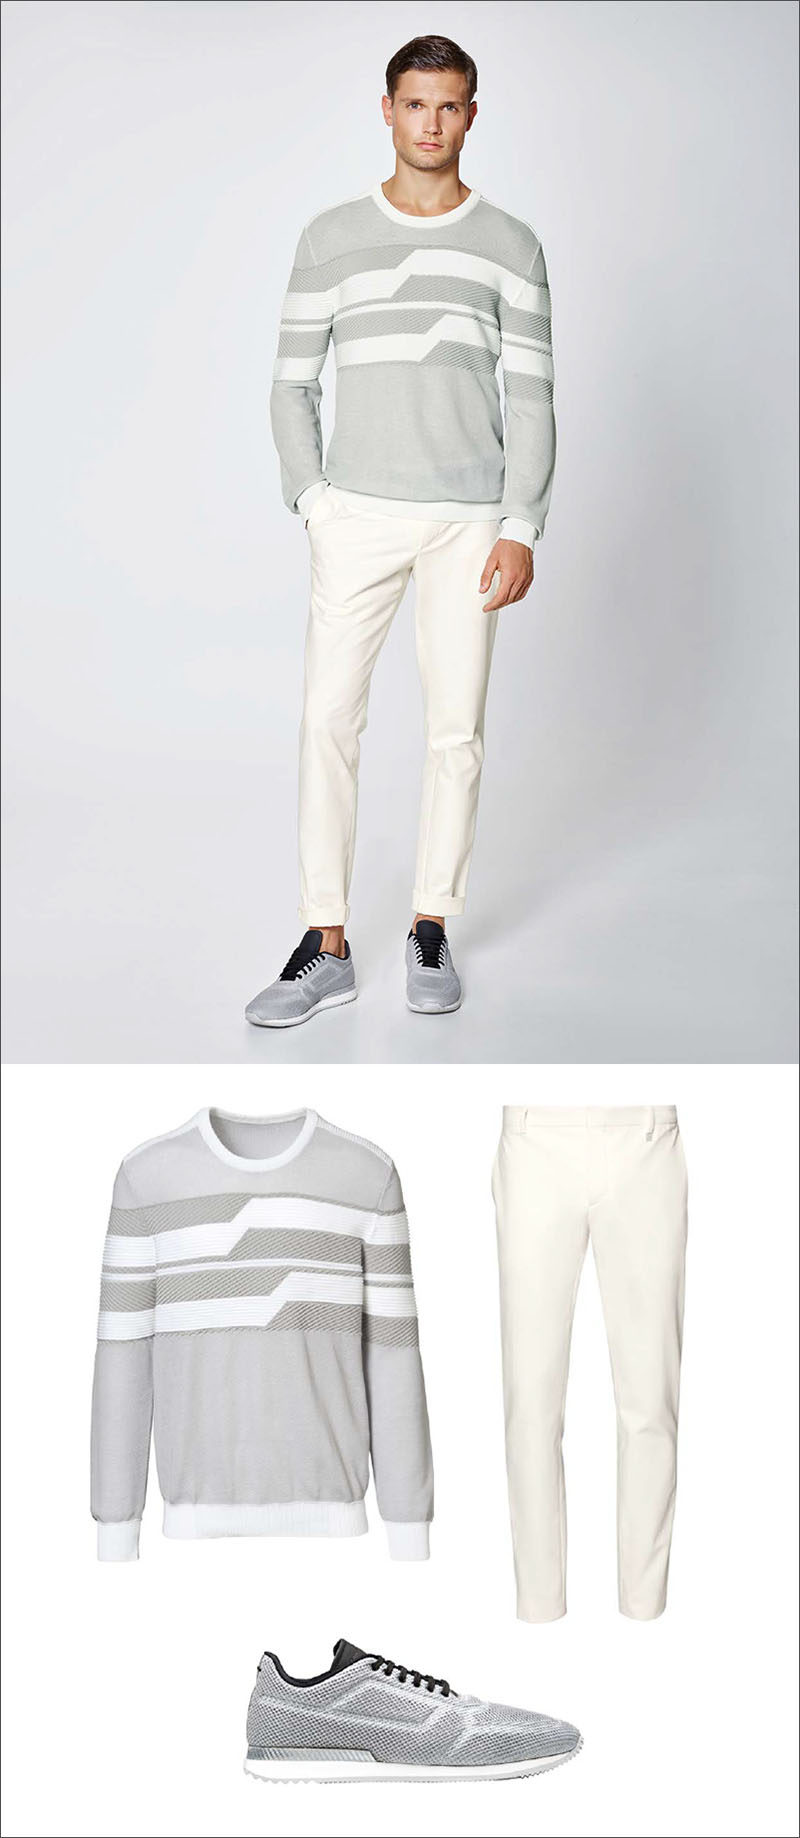 Men's Fashion Ideas - 17 Men's Outfits From Porsche Design's 2017 Spring/Summer Collection | A grey and white sweater with fitted cuffs, white cotton pants, and grey sneakers complete this simple everyday men's outfit.